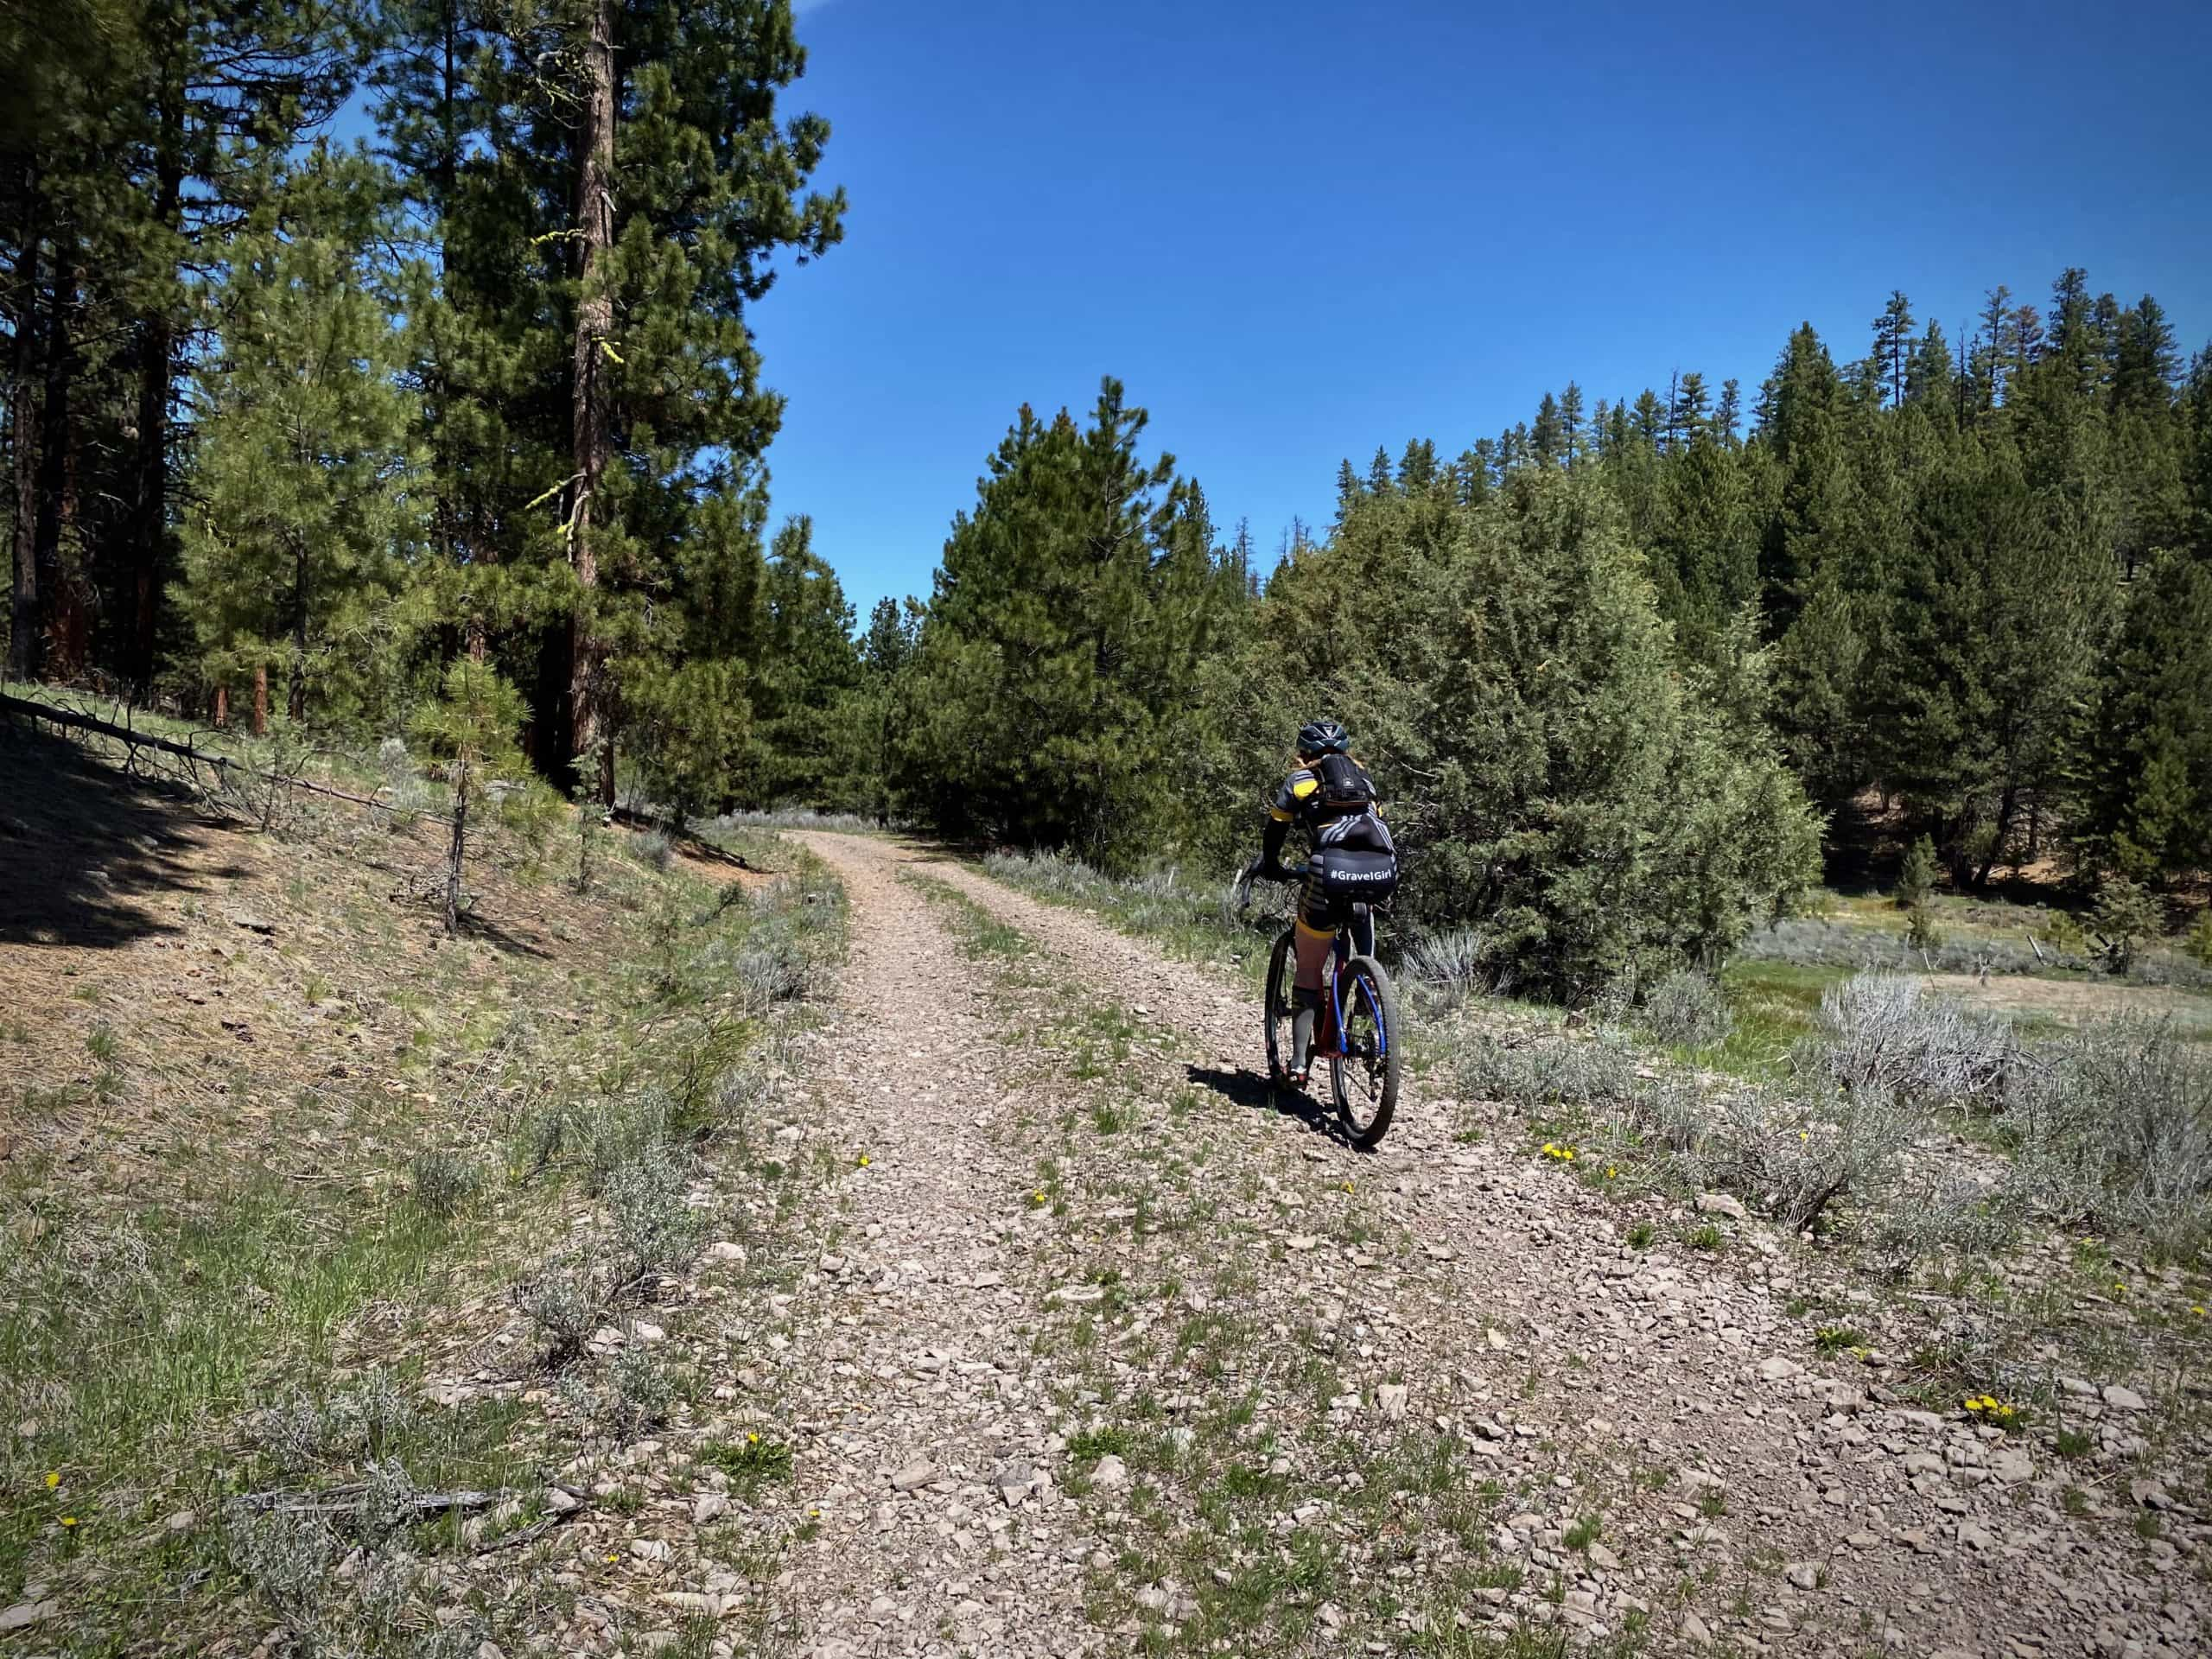 Cyclist riding primitive gravel road with some gnar in the Ochoco National Forest near Burns, Oregon.